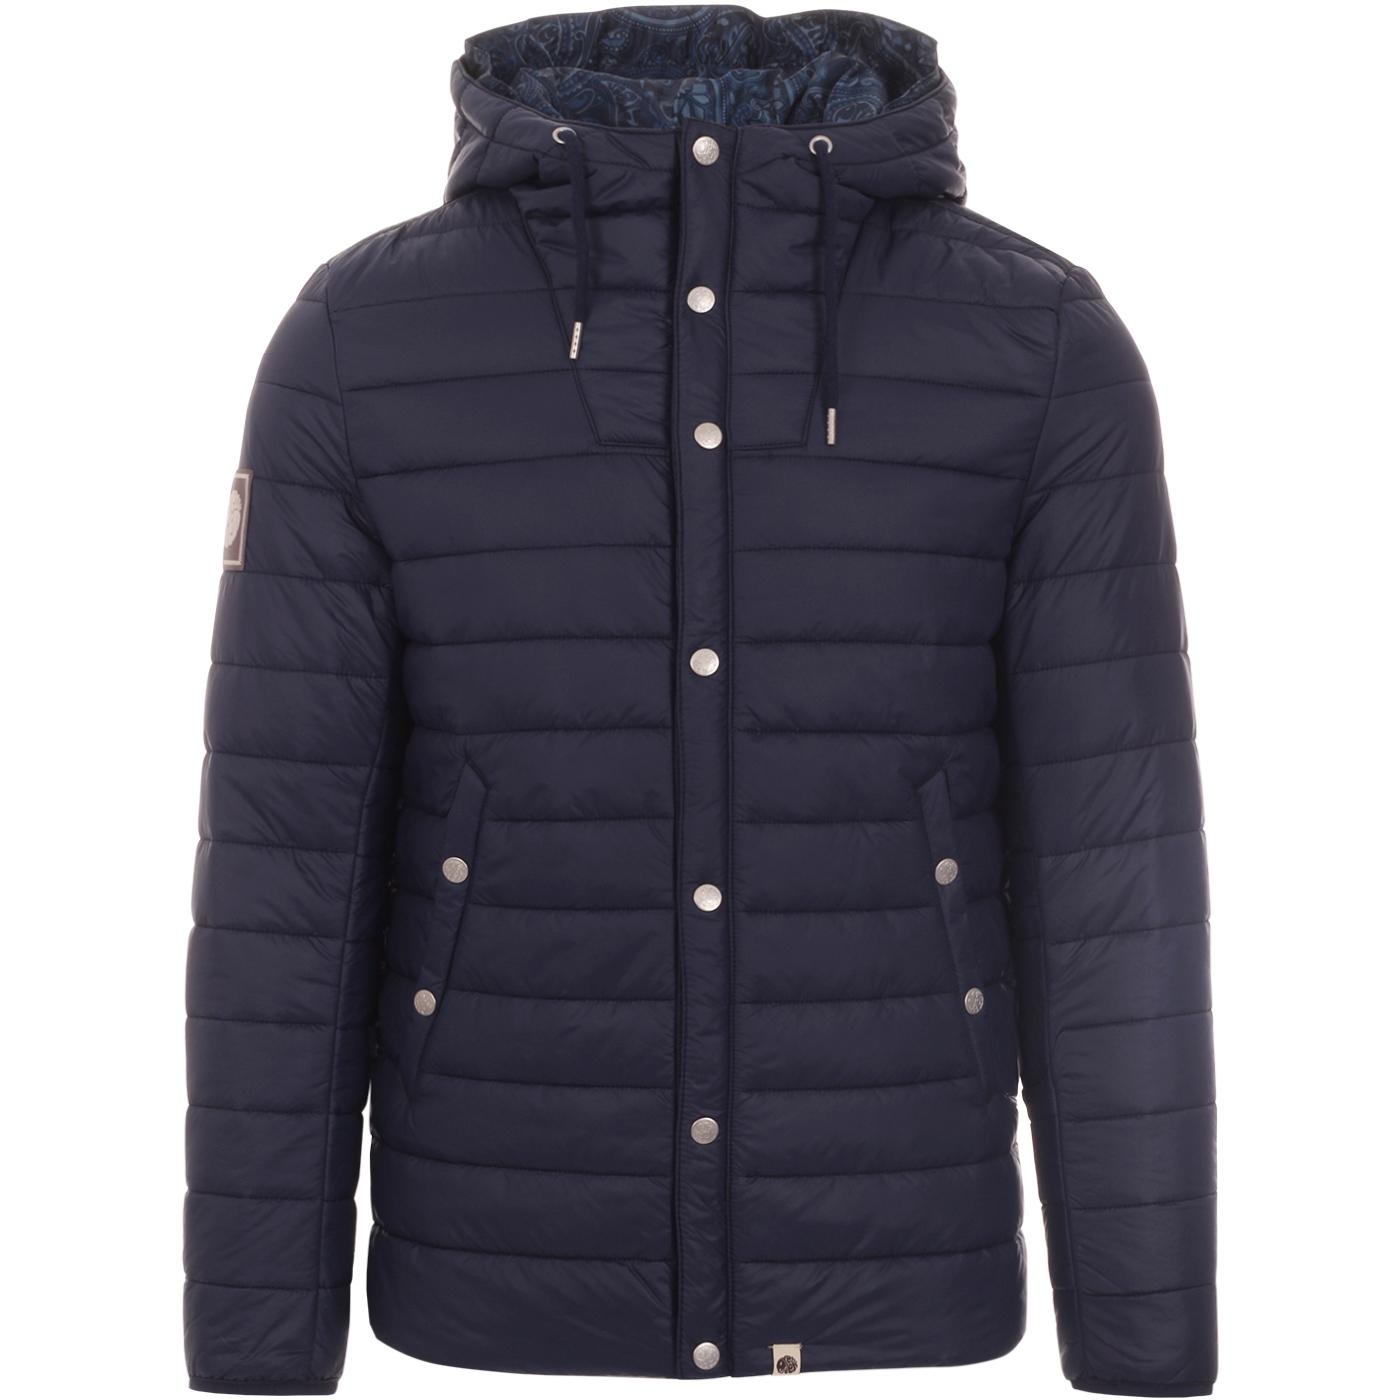 PRETTY GREEN Retro 70s Hooded Quilted Jacket NAVY